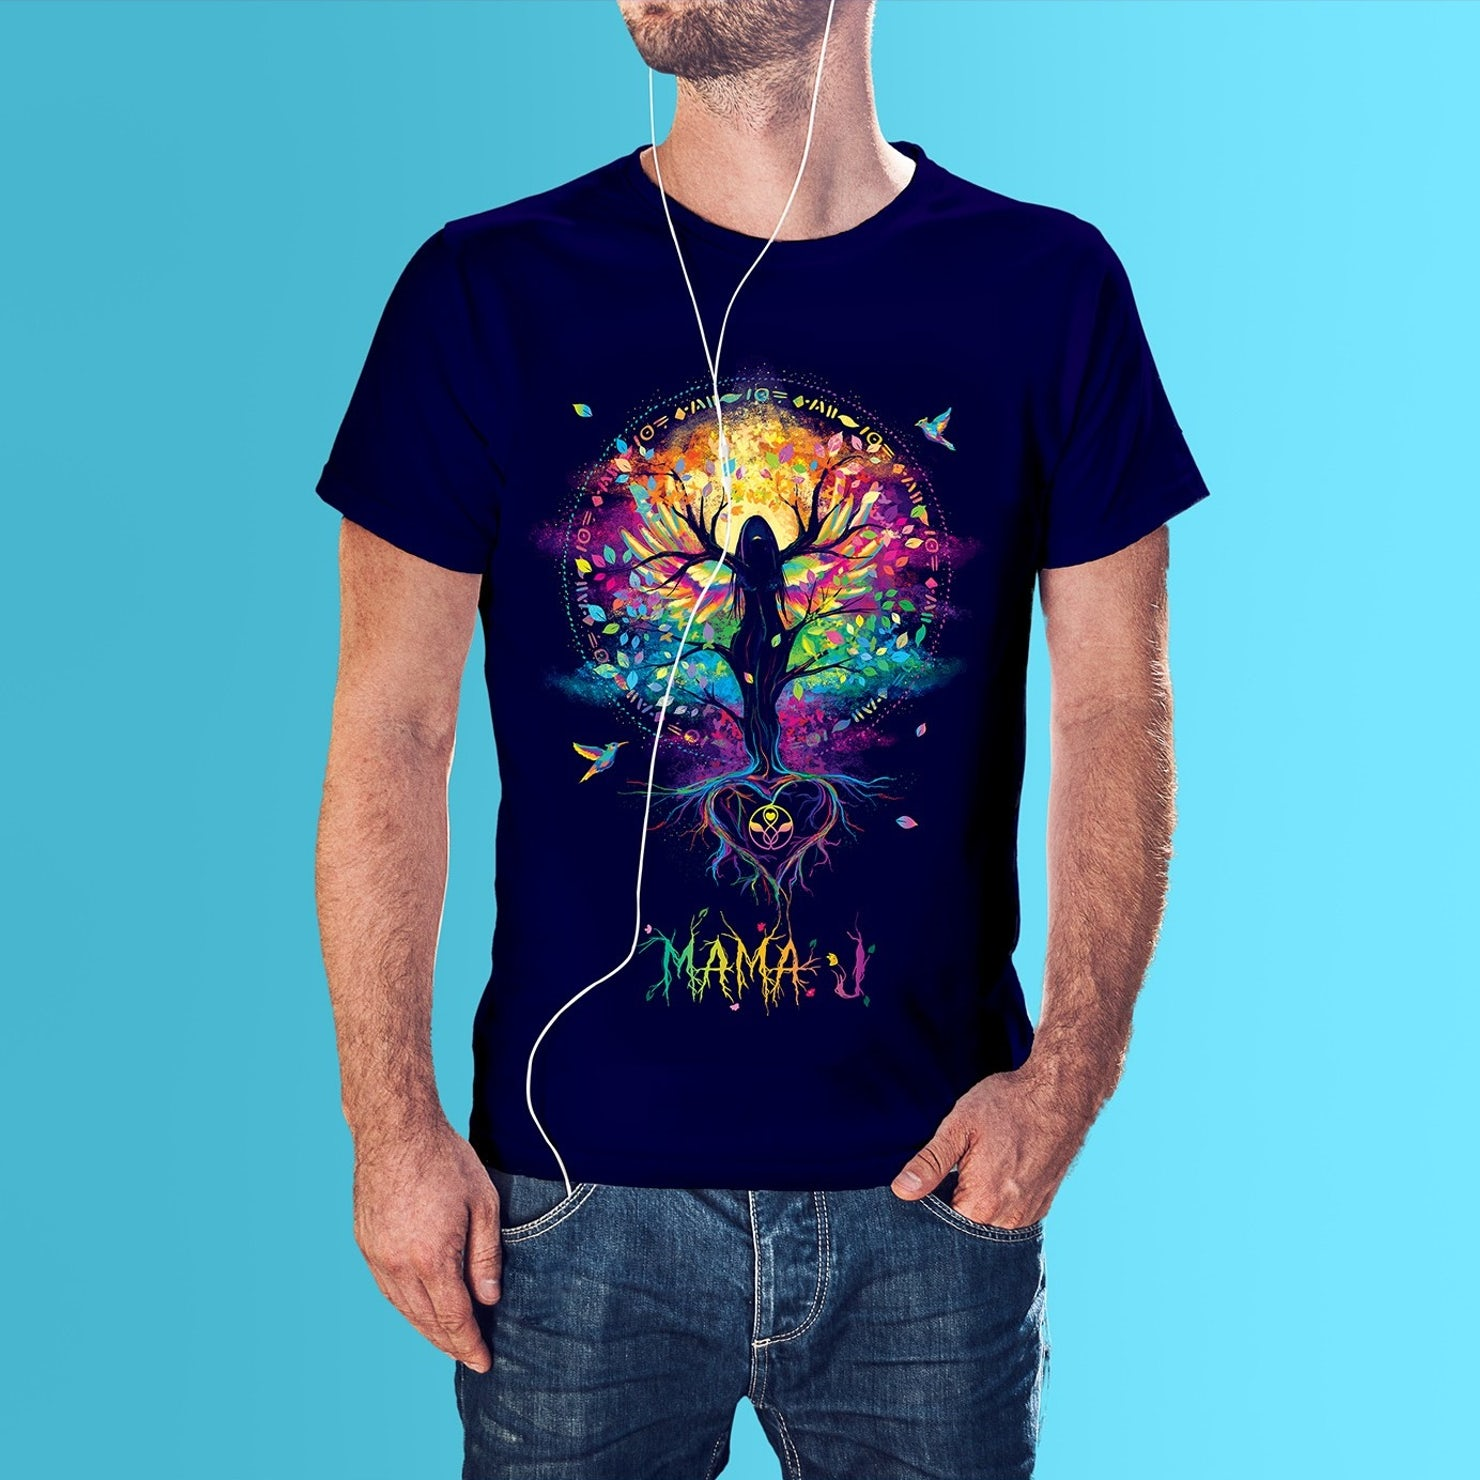 The 10 best freelance t-shirt designers for hire in 2021 - 99designs